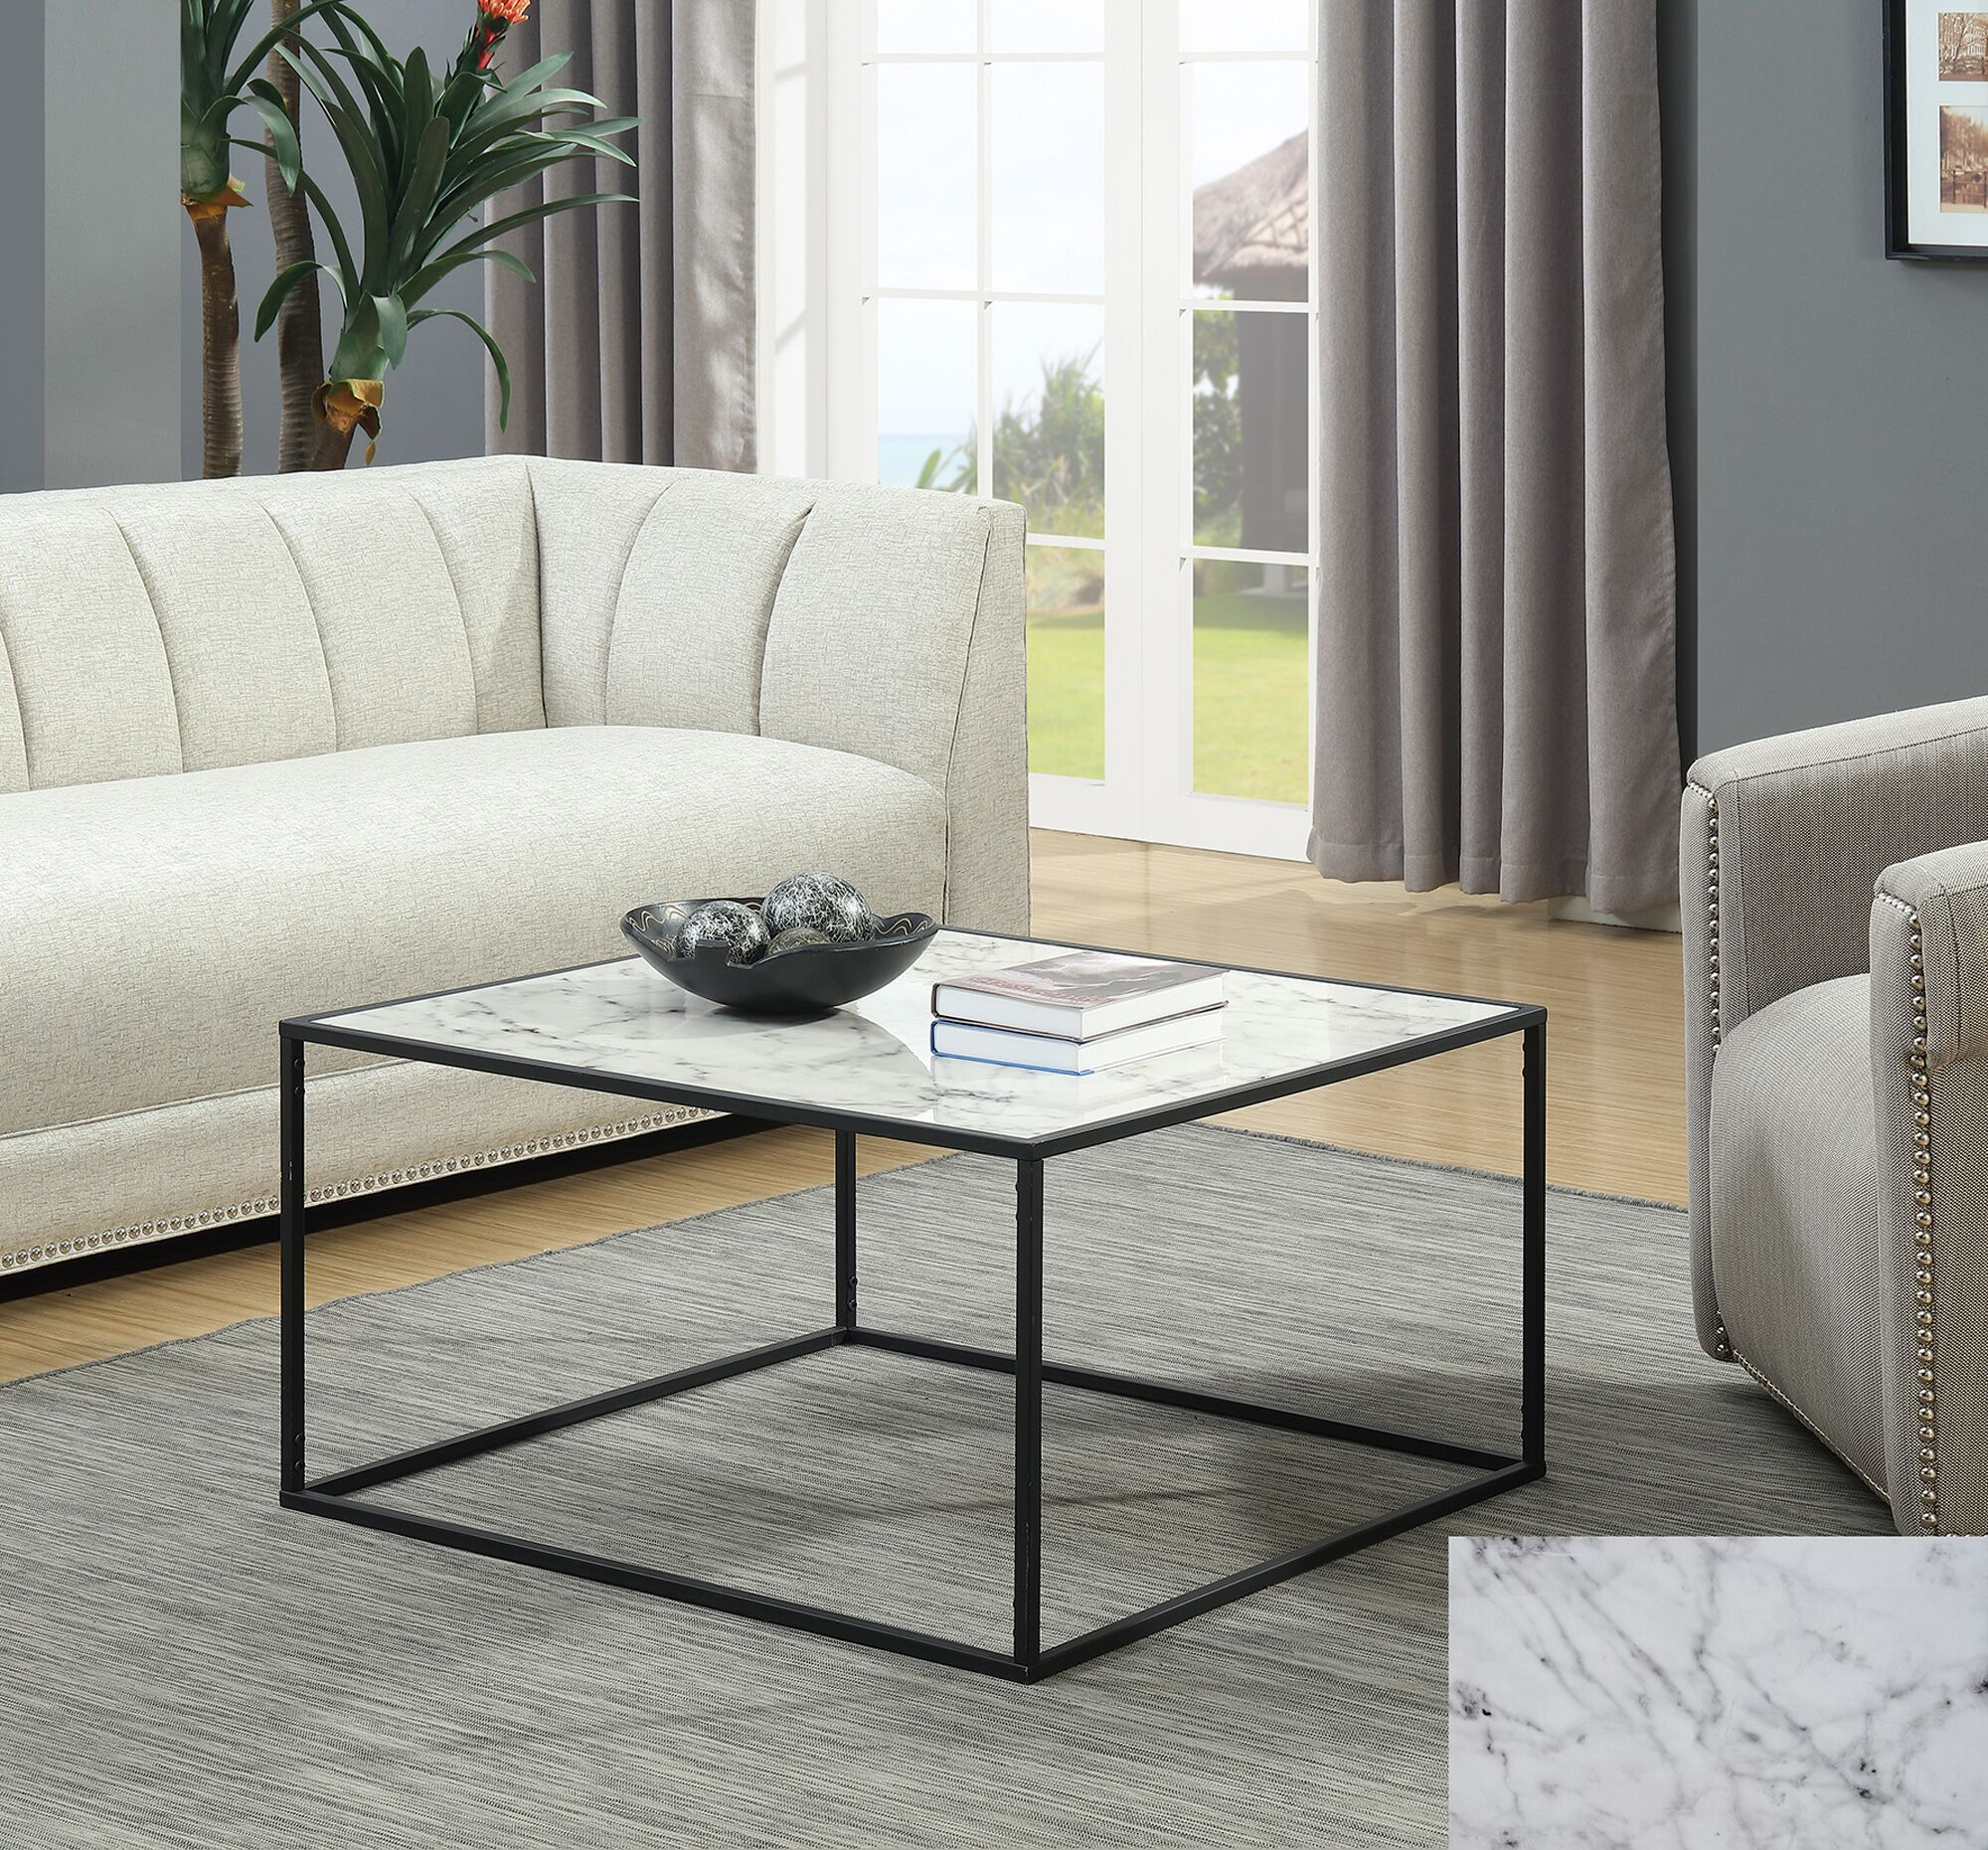 Theydon Coffee Table Color: White/Black